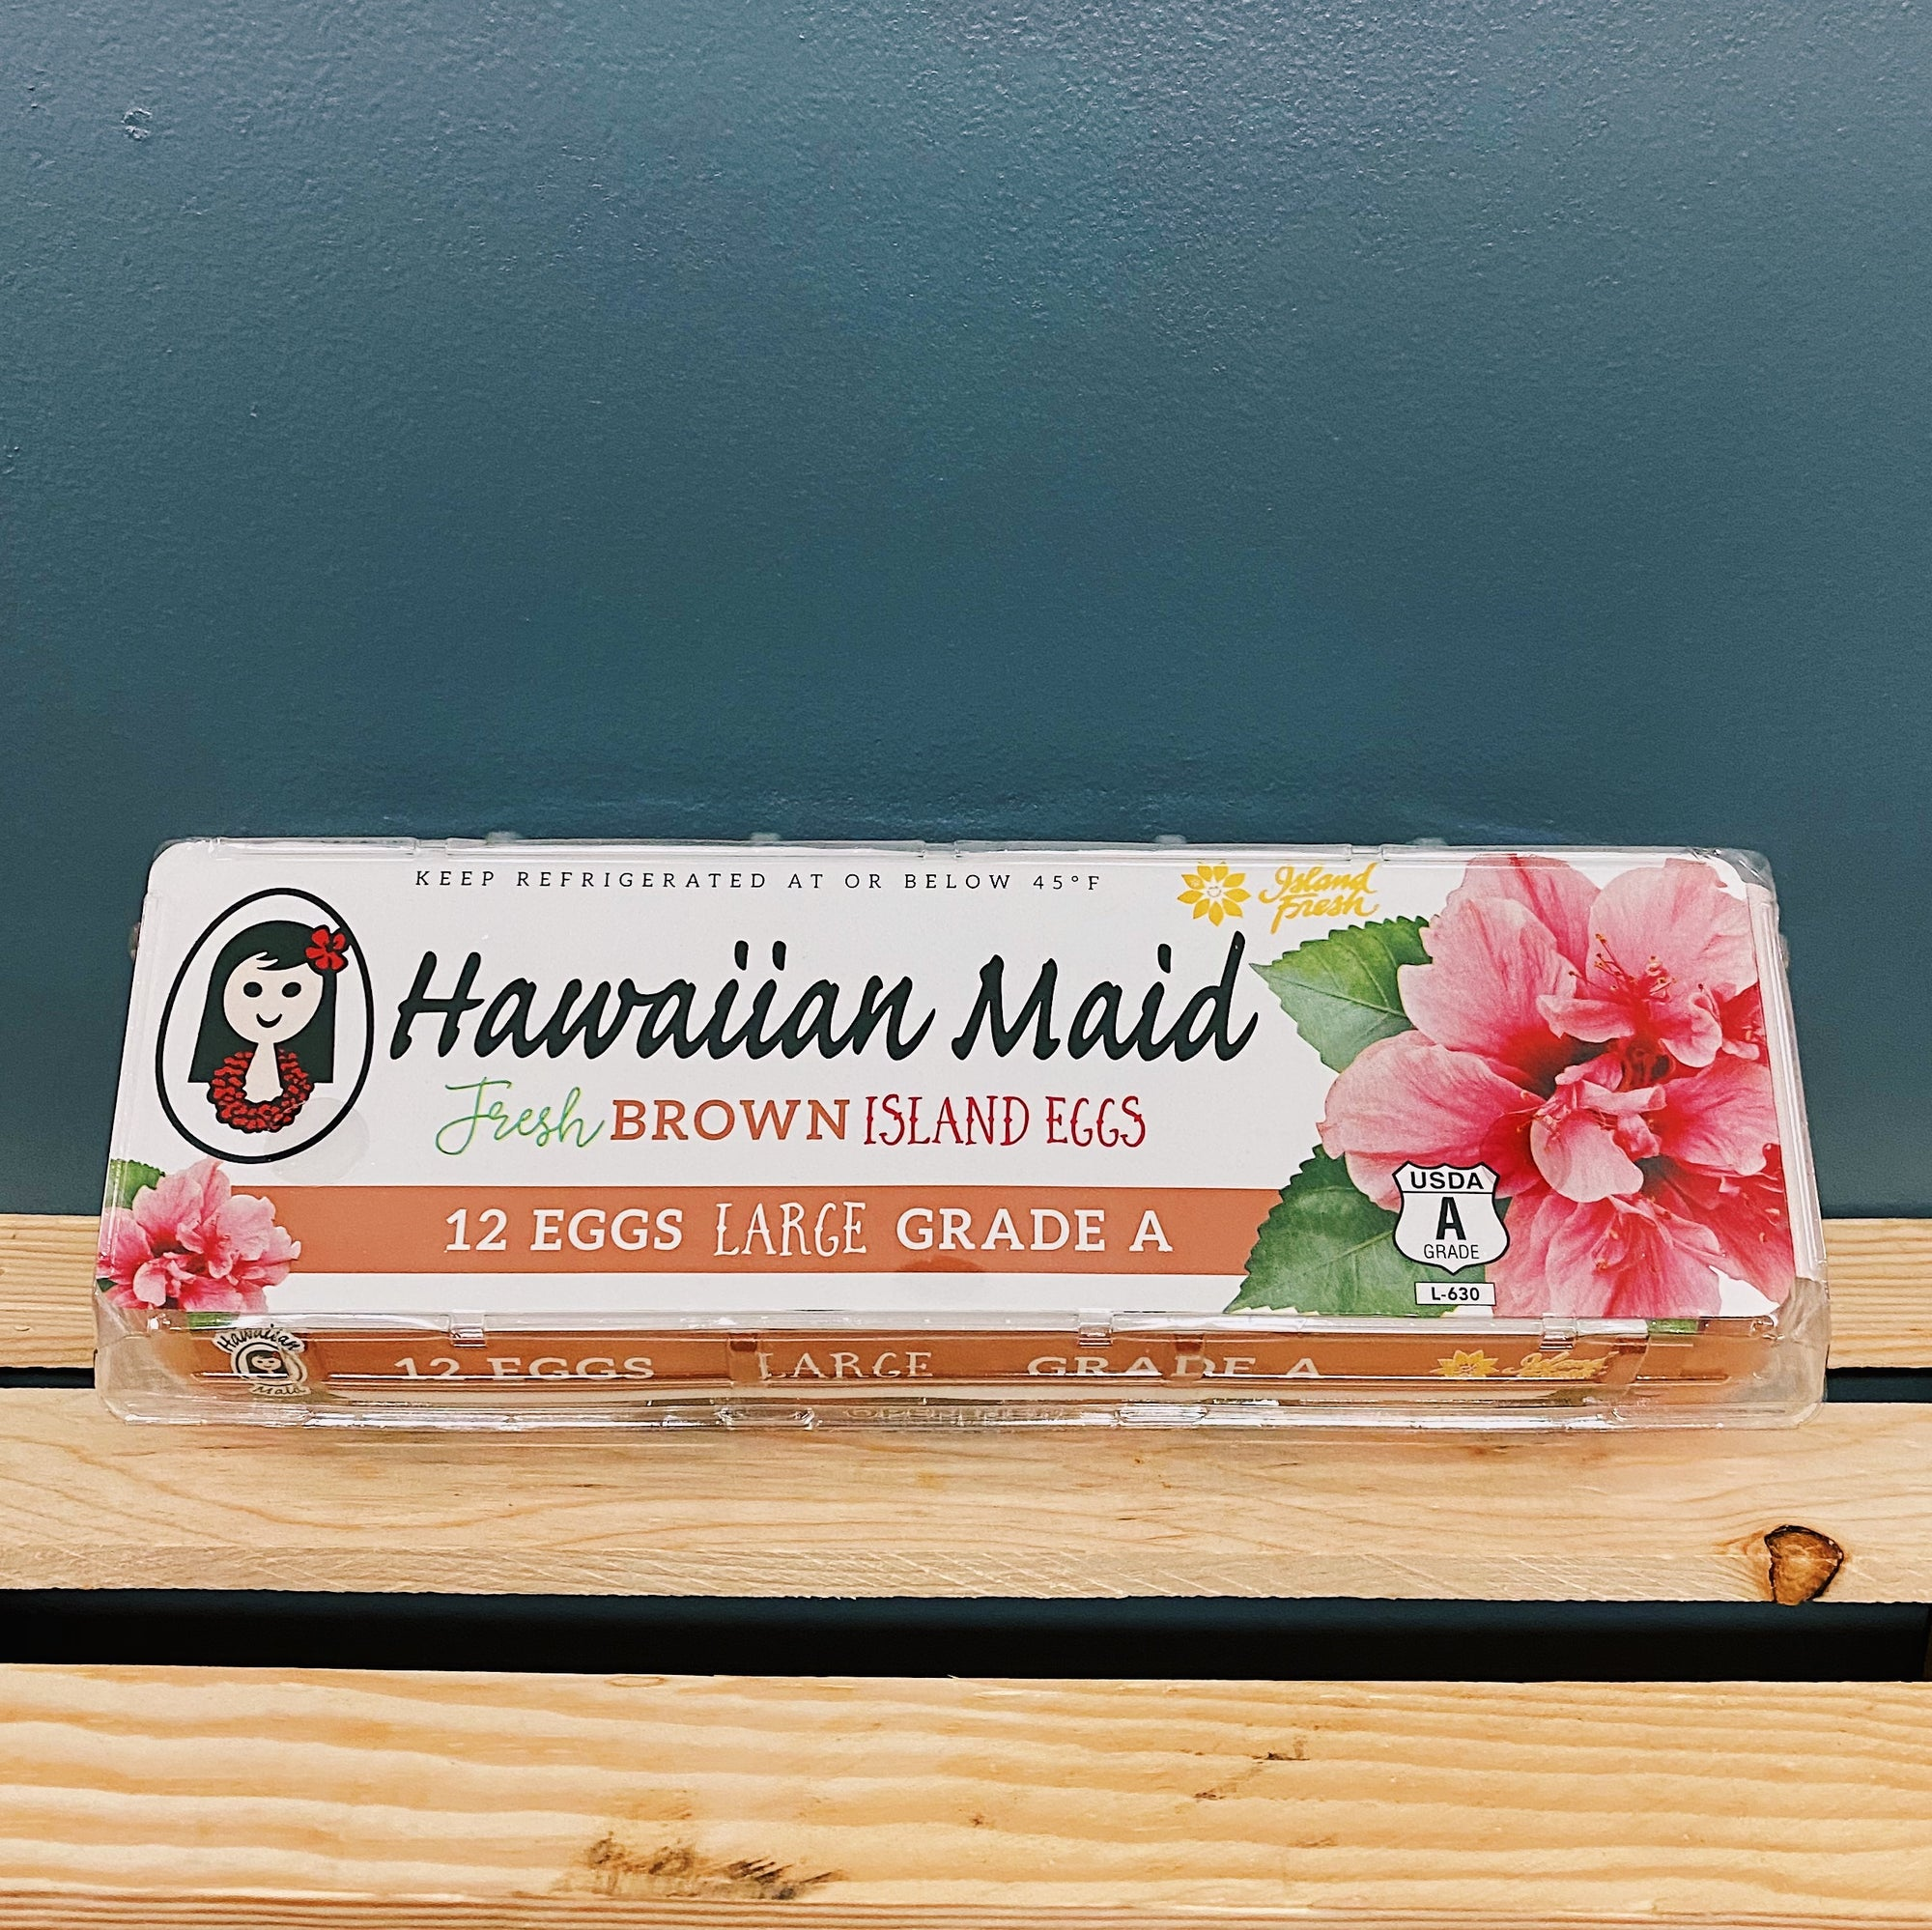 Eggs - Hawaiian Maid Large Fresh Brown Island Eggs (12)